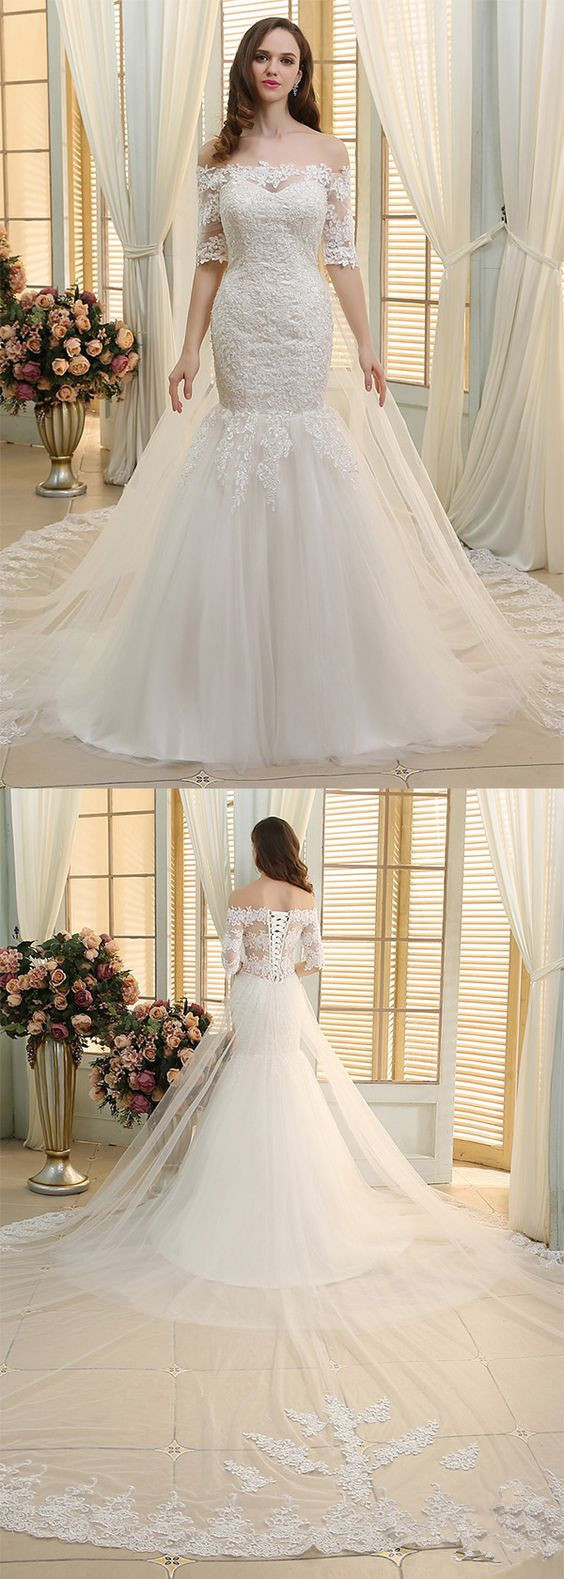 Gorgeous Tulle Off-the-shoulder Neckline Mermaid Wedding Dresses With Beaded